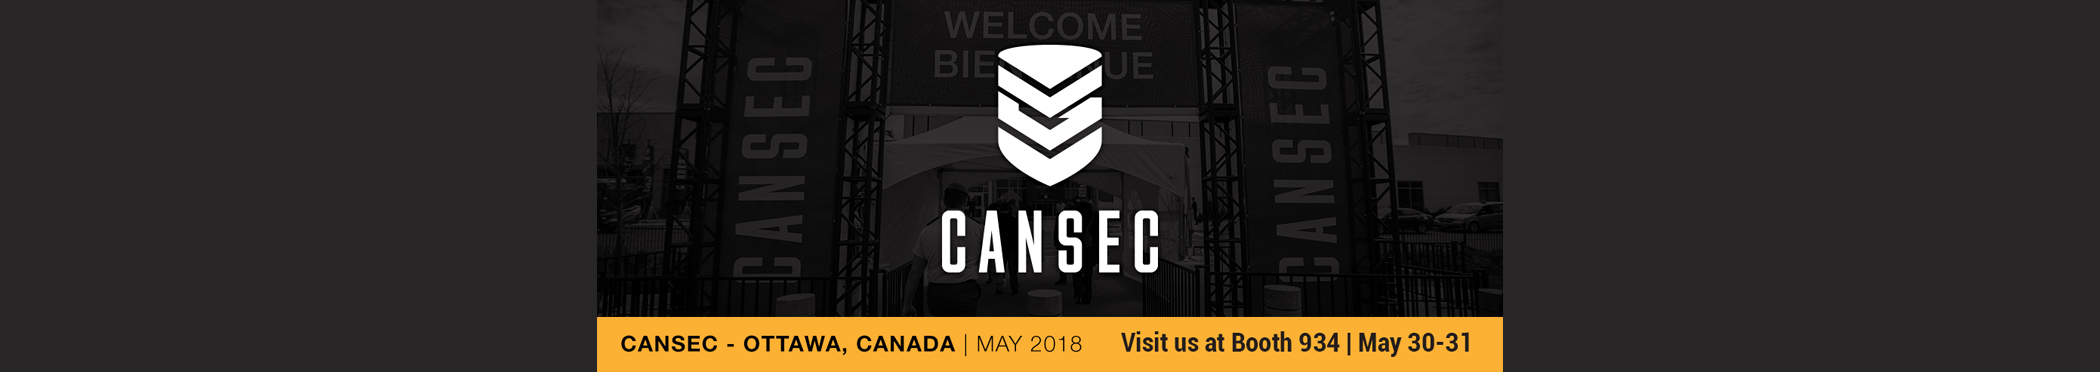 cansec2018-banner